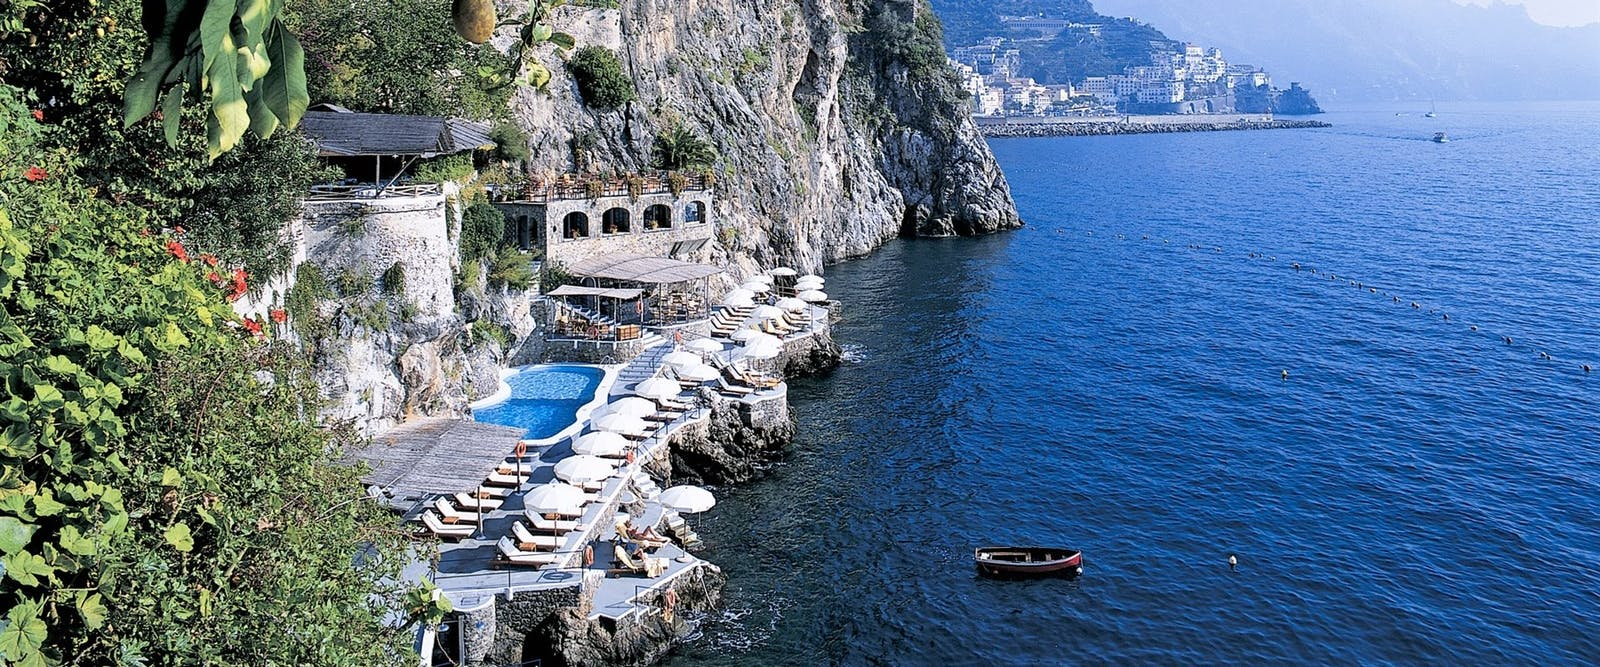 Beach Club and Pool at Hotel Santa Caterina, Amalfi Coast, Italy